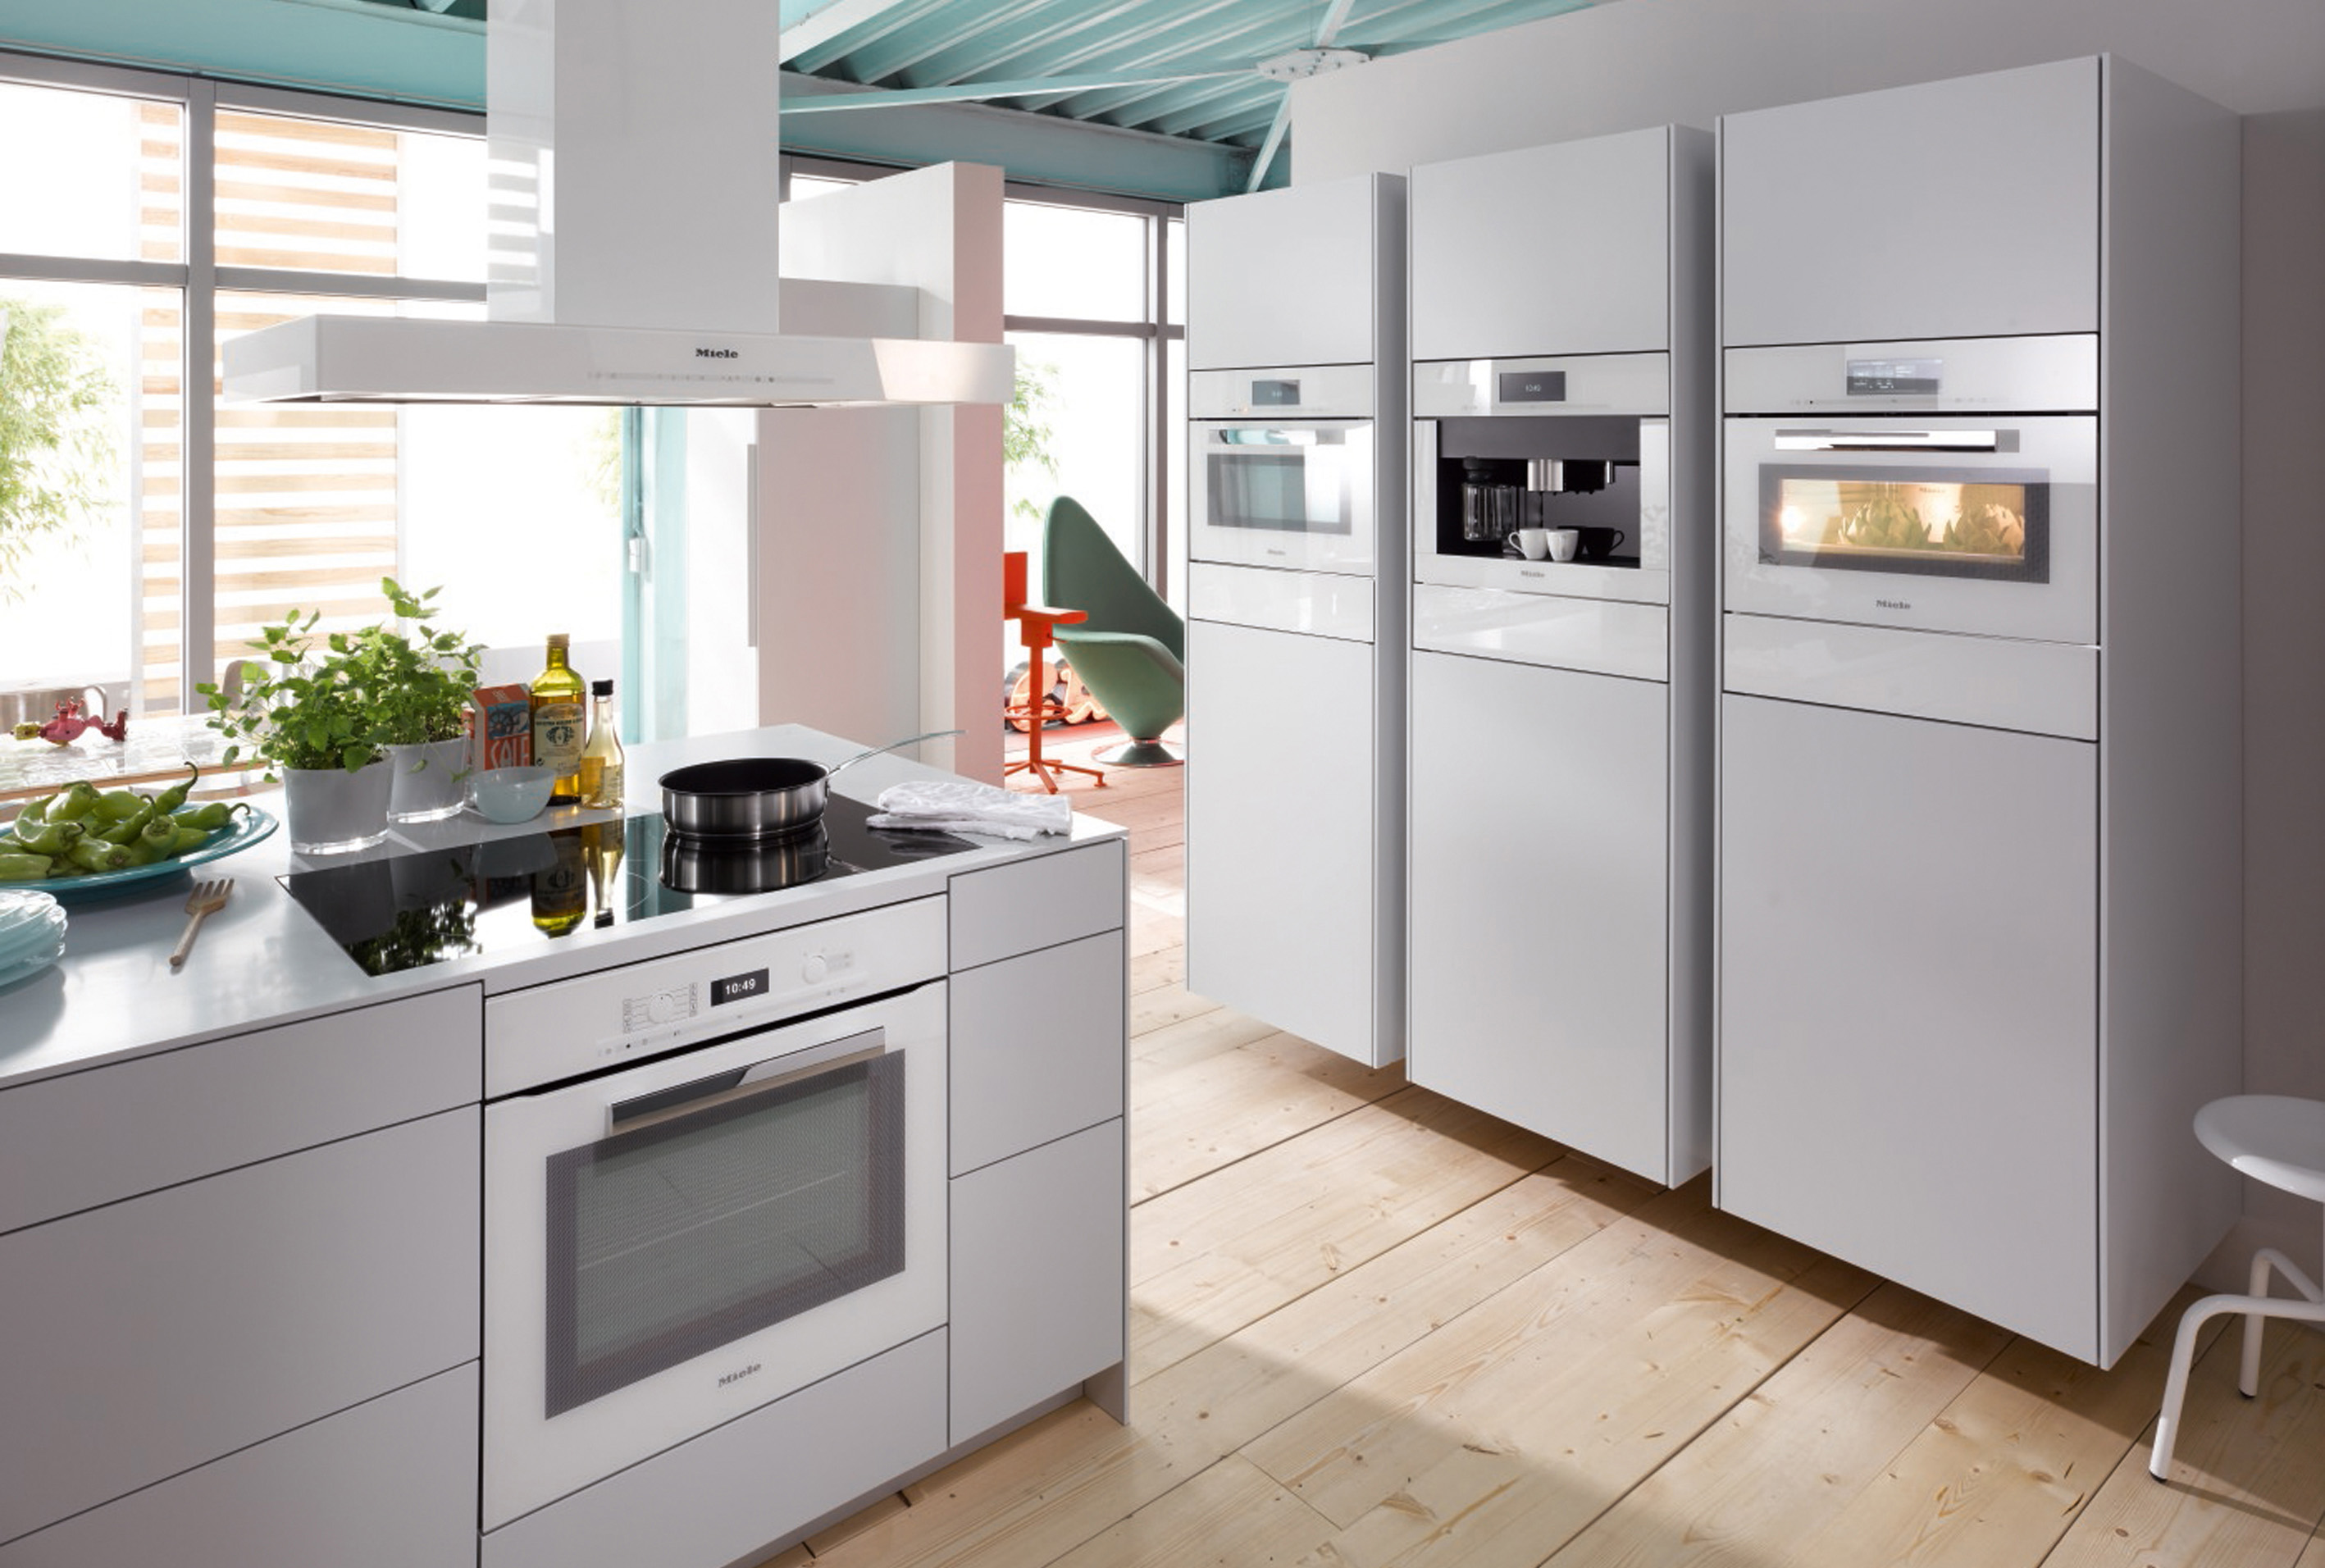 Integrated Kitchen Appliances Integrated More And More Appliances Will Be Flush Mounted With The